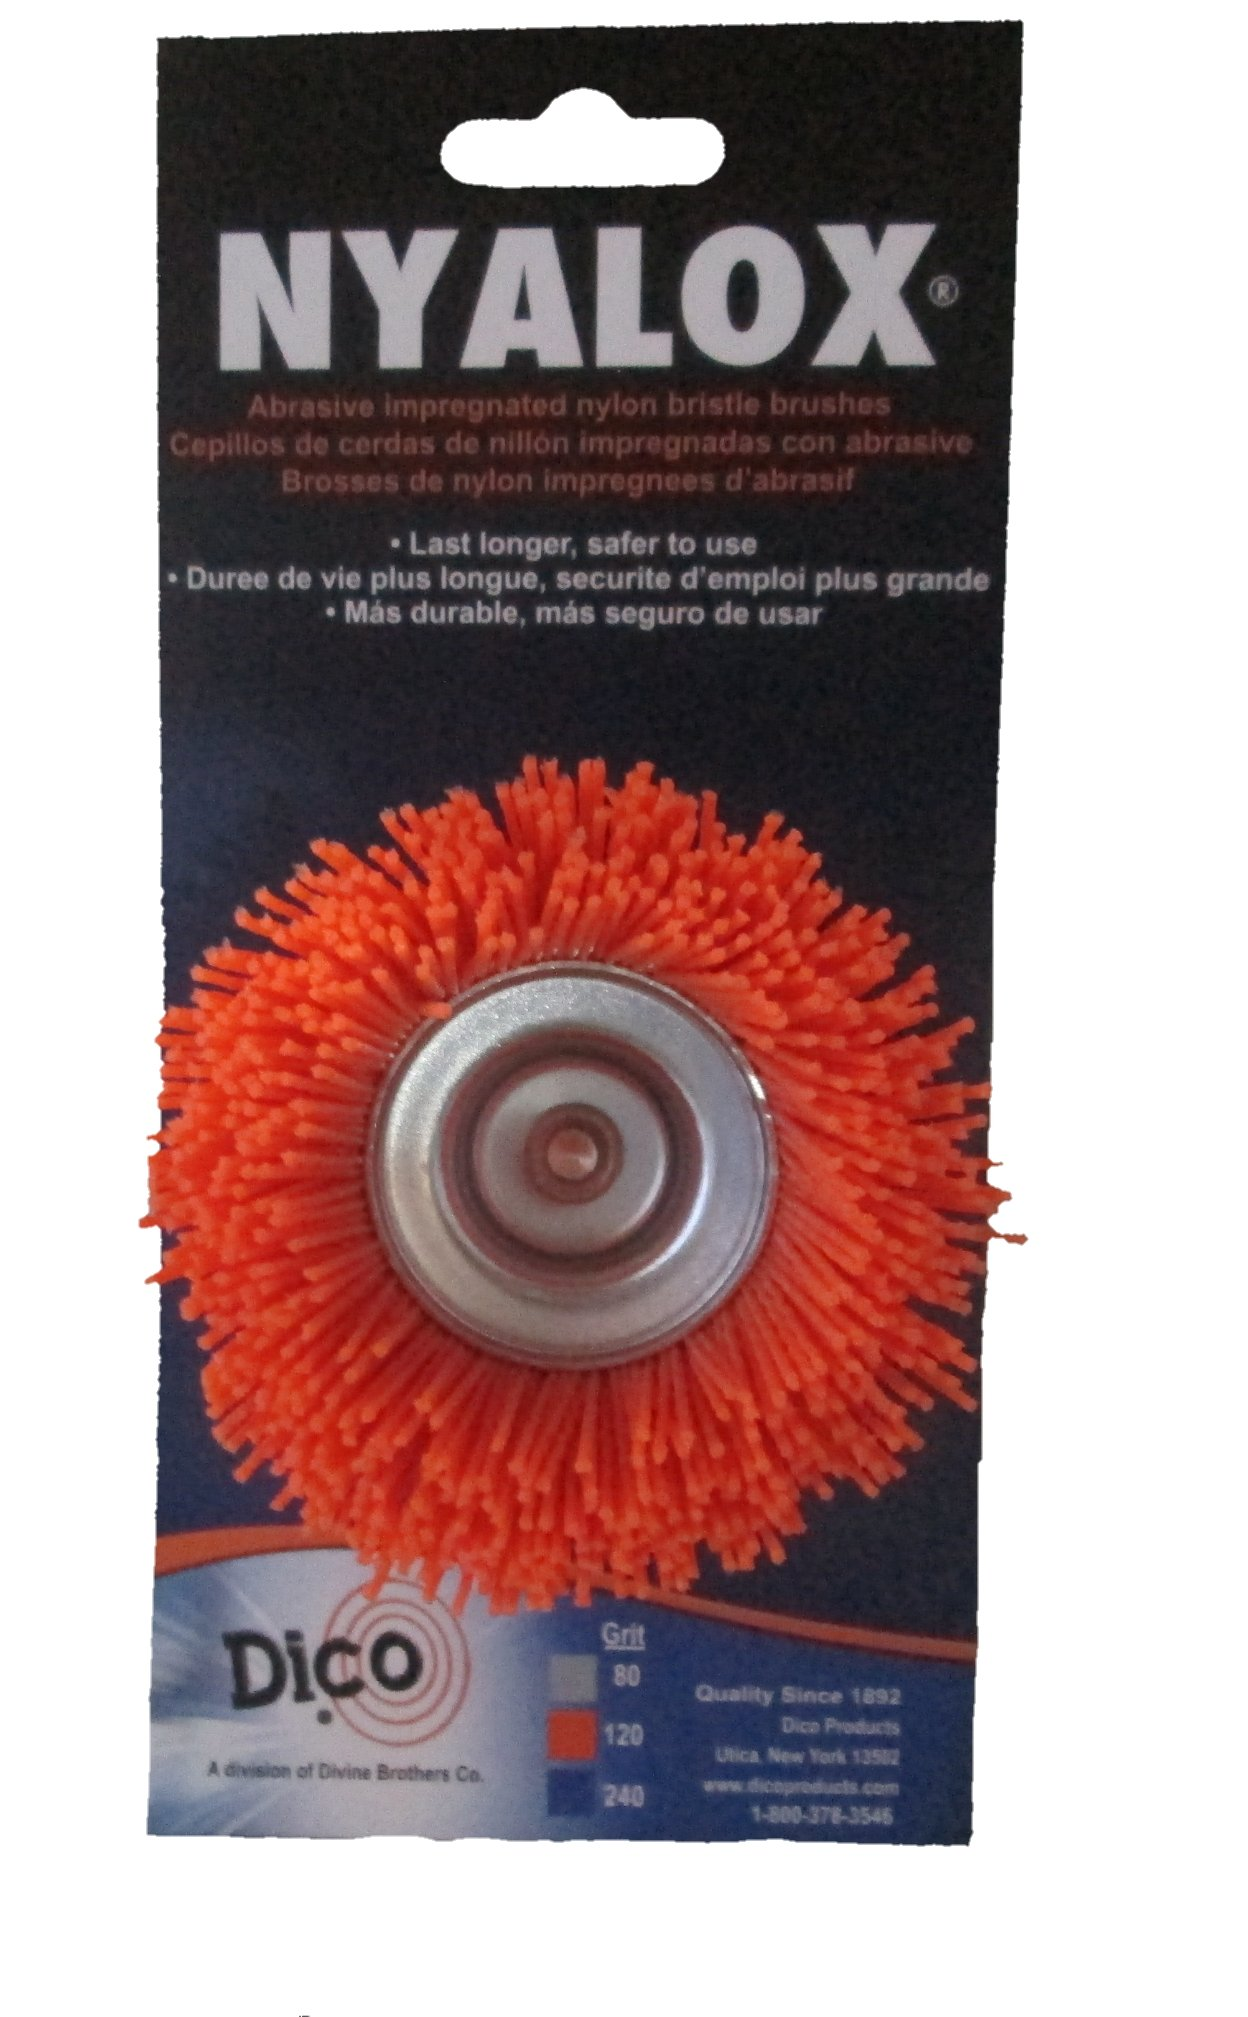 Best Rated in Abrasive Brushes   Helpful Customer Reviews - Amazon.com ef3ce0f74376